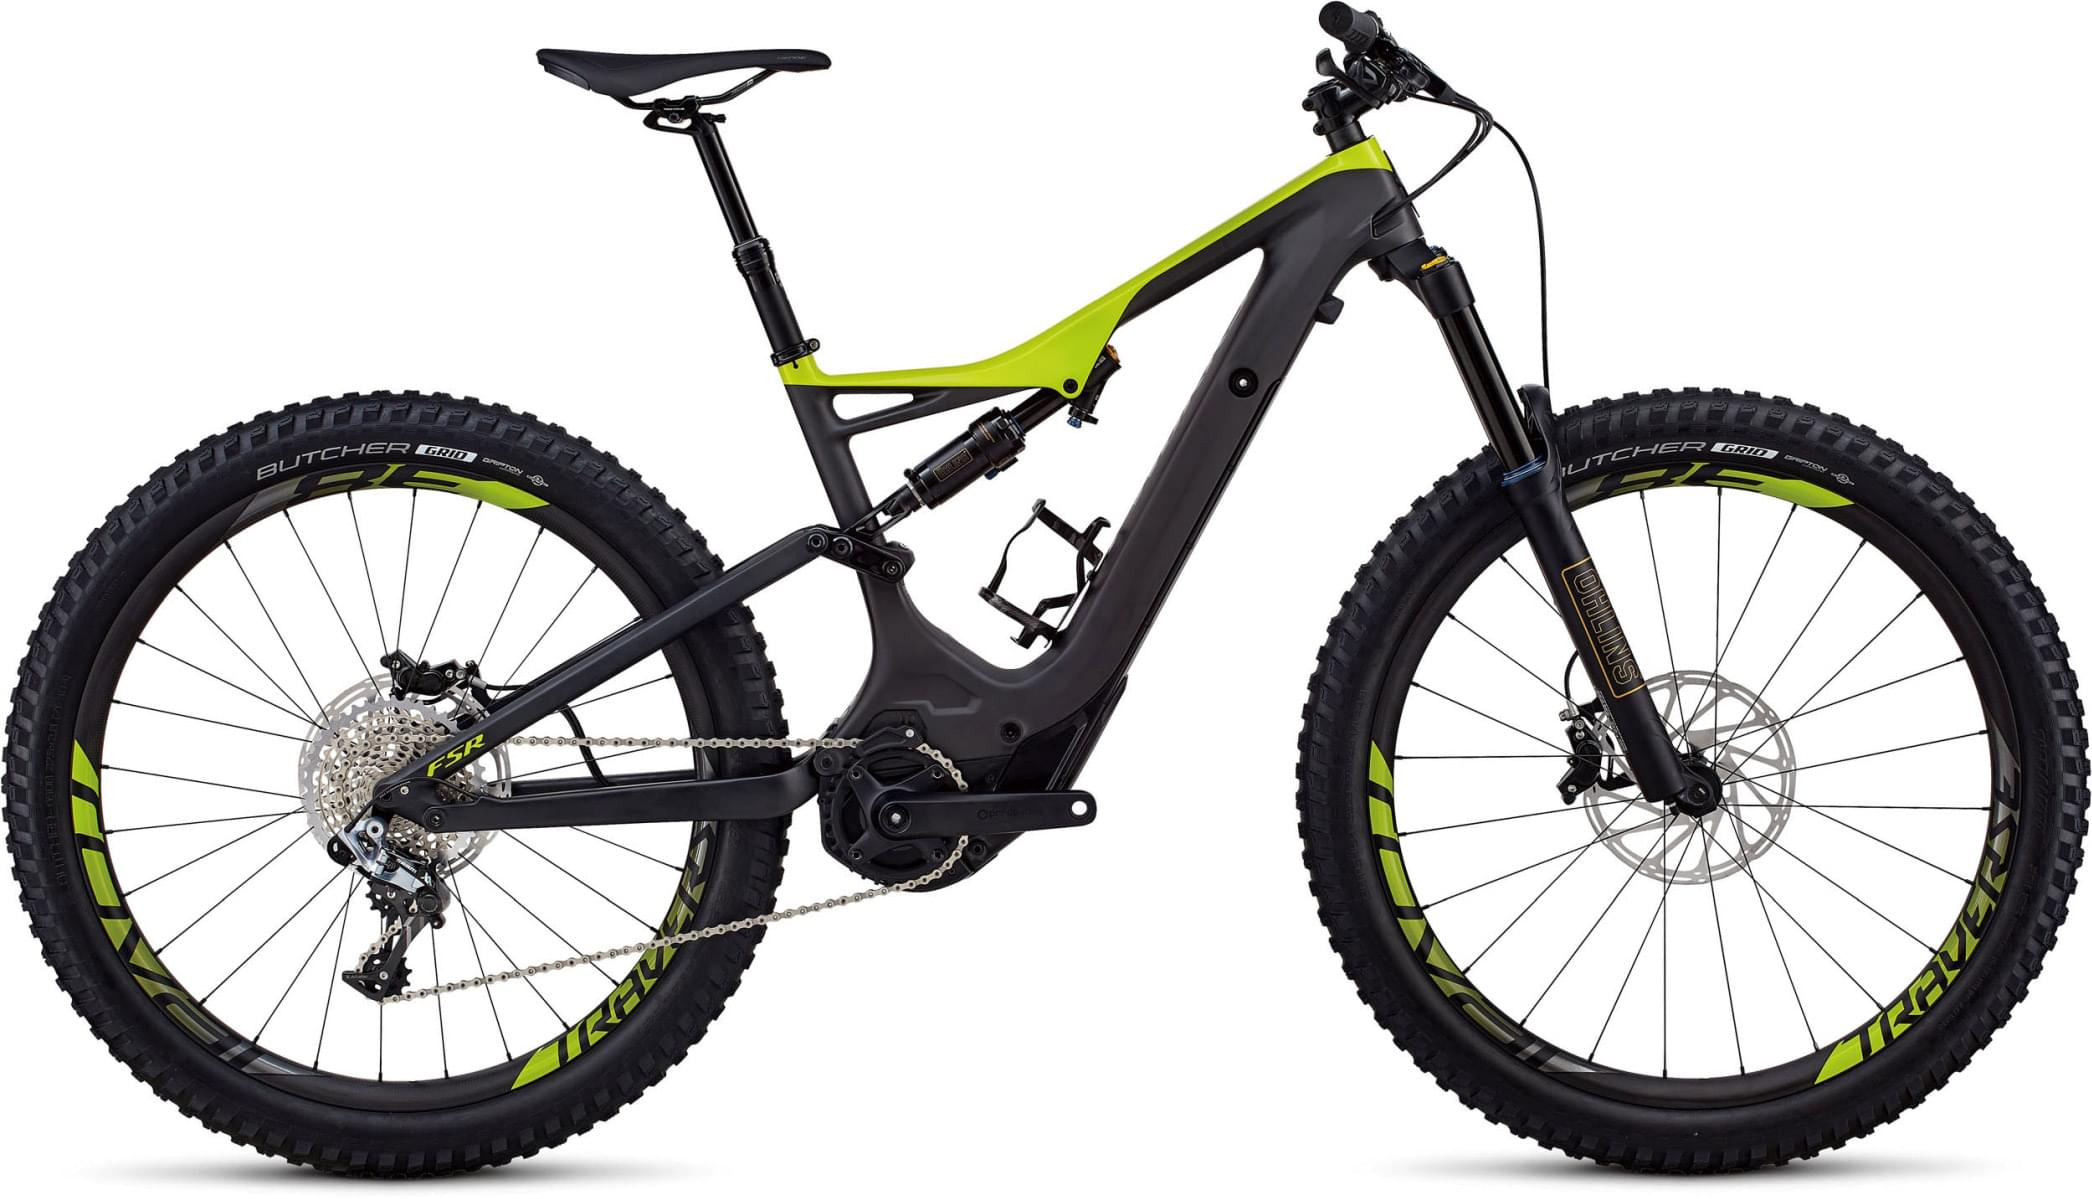 Specialized S-Works Turbo Levo FSR 6Fattie/29 - NB - carbon/hyper green M